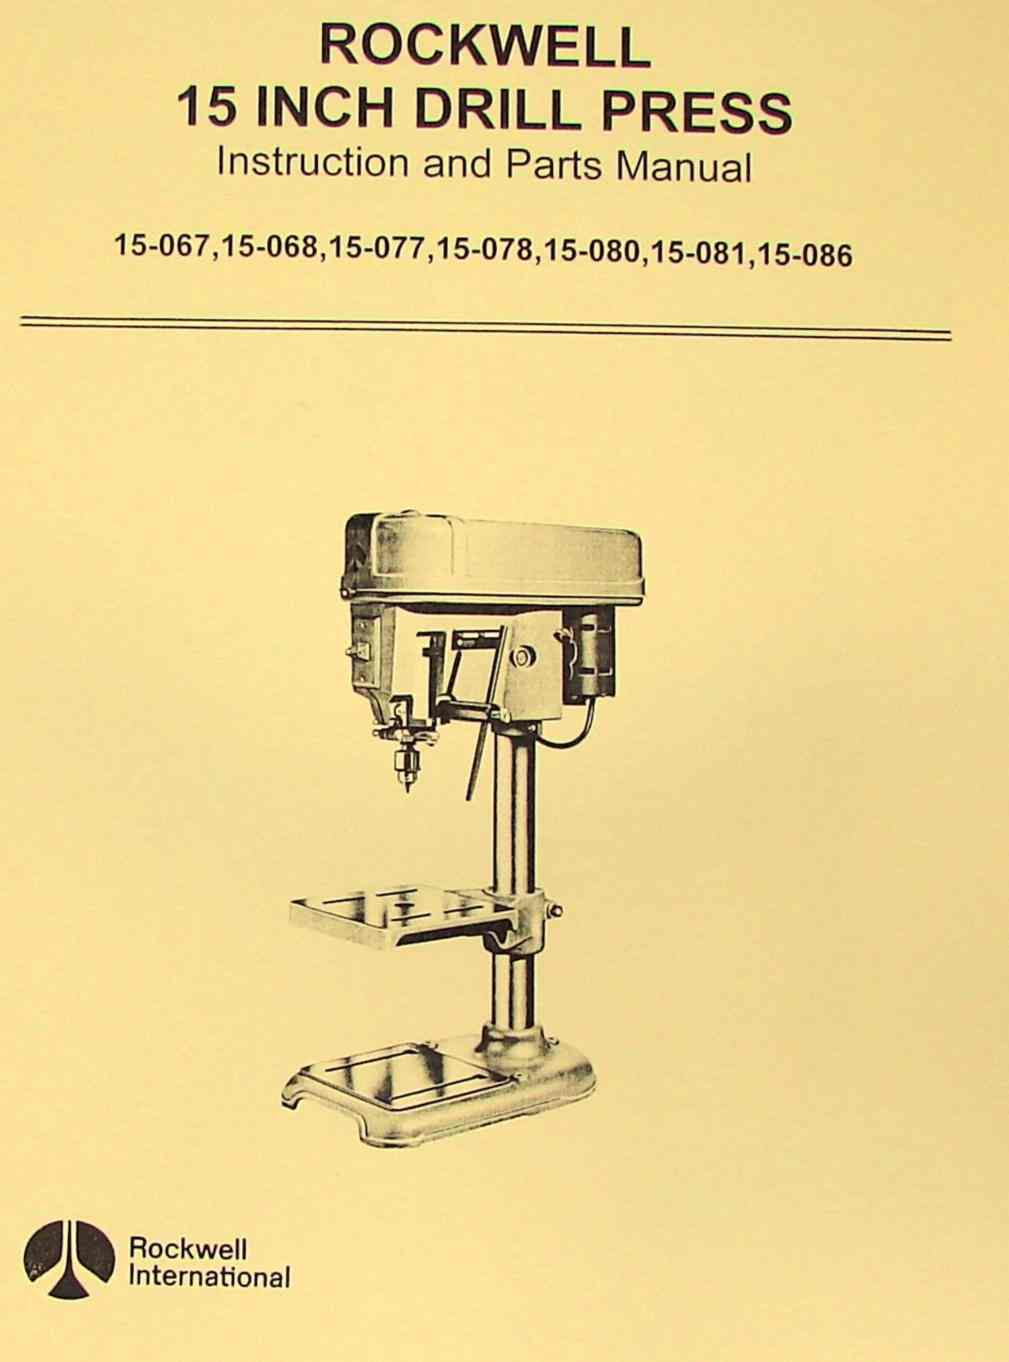 rockwell 15 drill press model operator s parts manual ozark rh ozarktoolmanuals com New Balance Manuals User Guide Icon